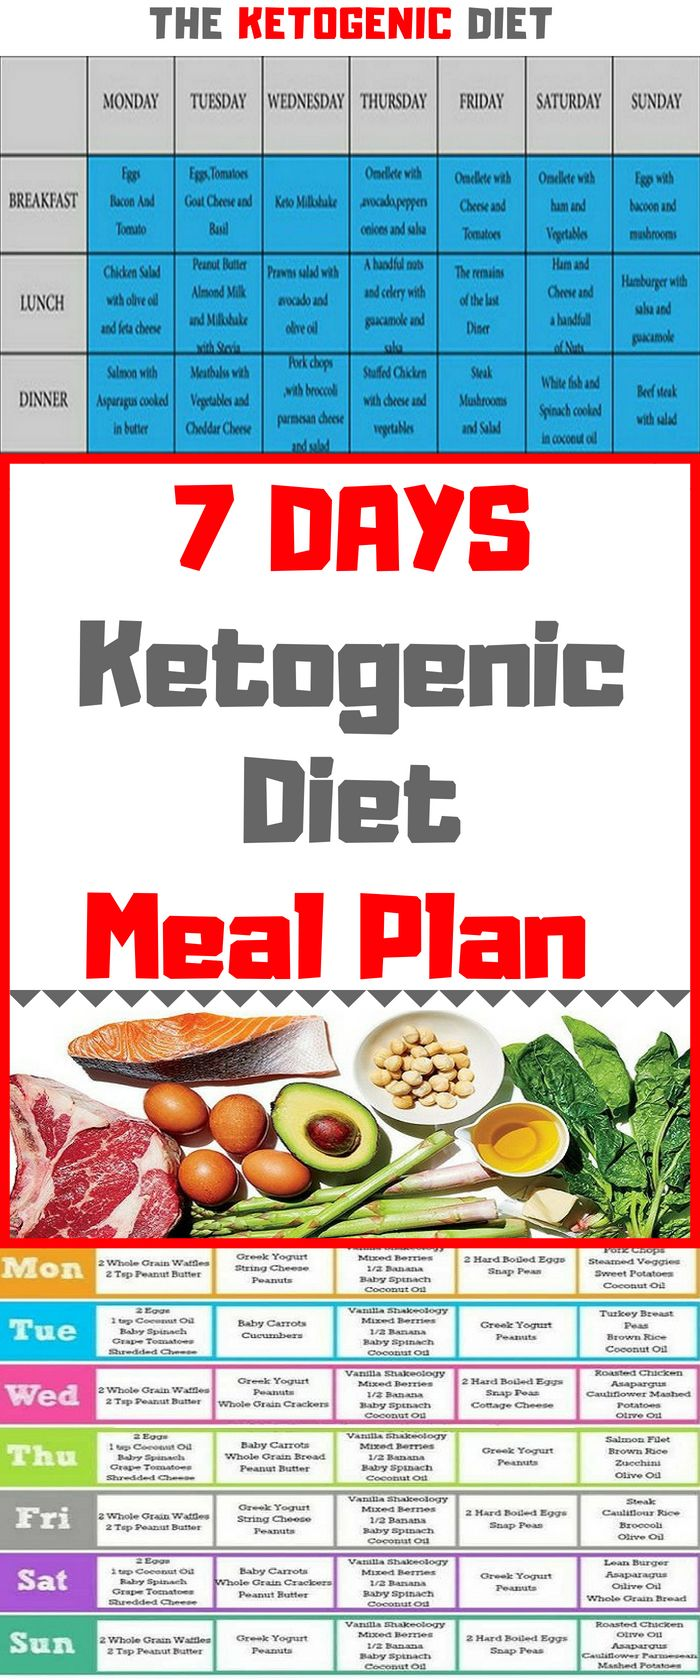 After All You Will See That The Diet Is Not So Strict And Allows You To Eat Many Foods That You Love Just Ketogenic Diet Meal Plan 7 Day Diet